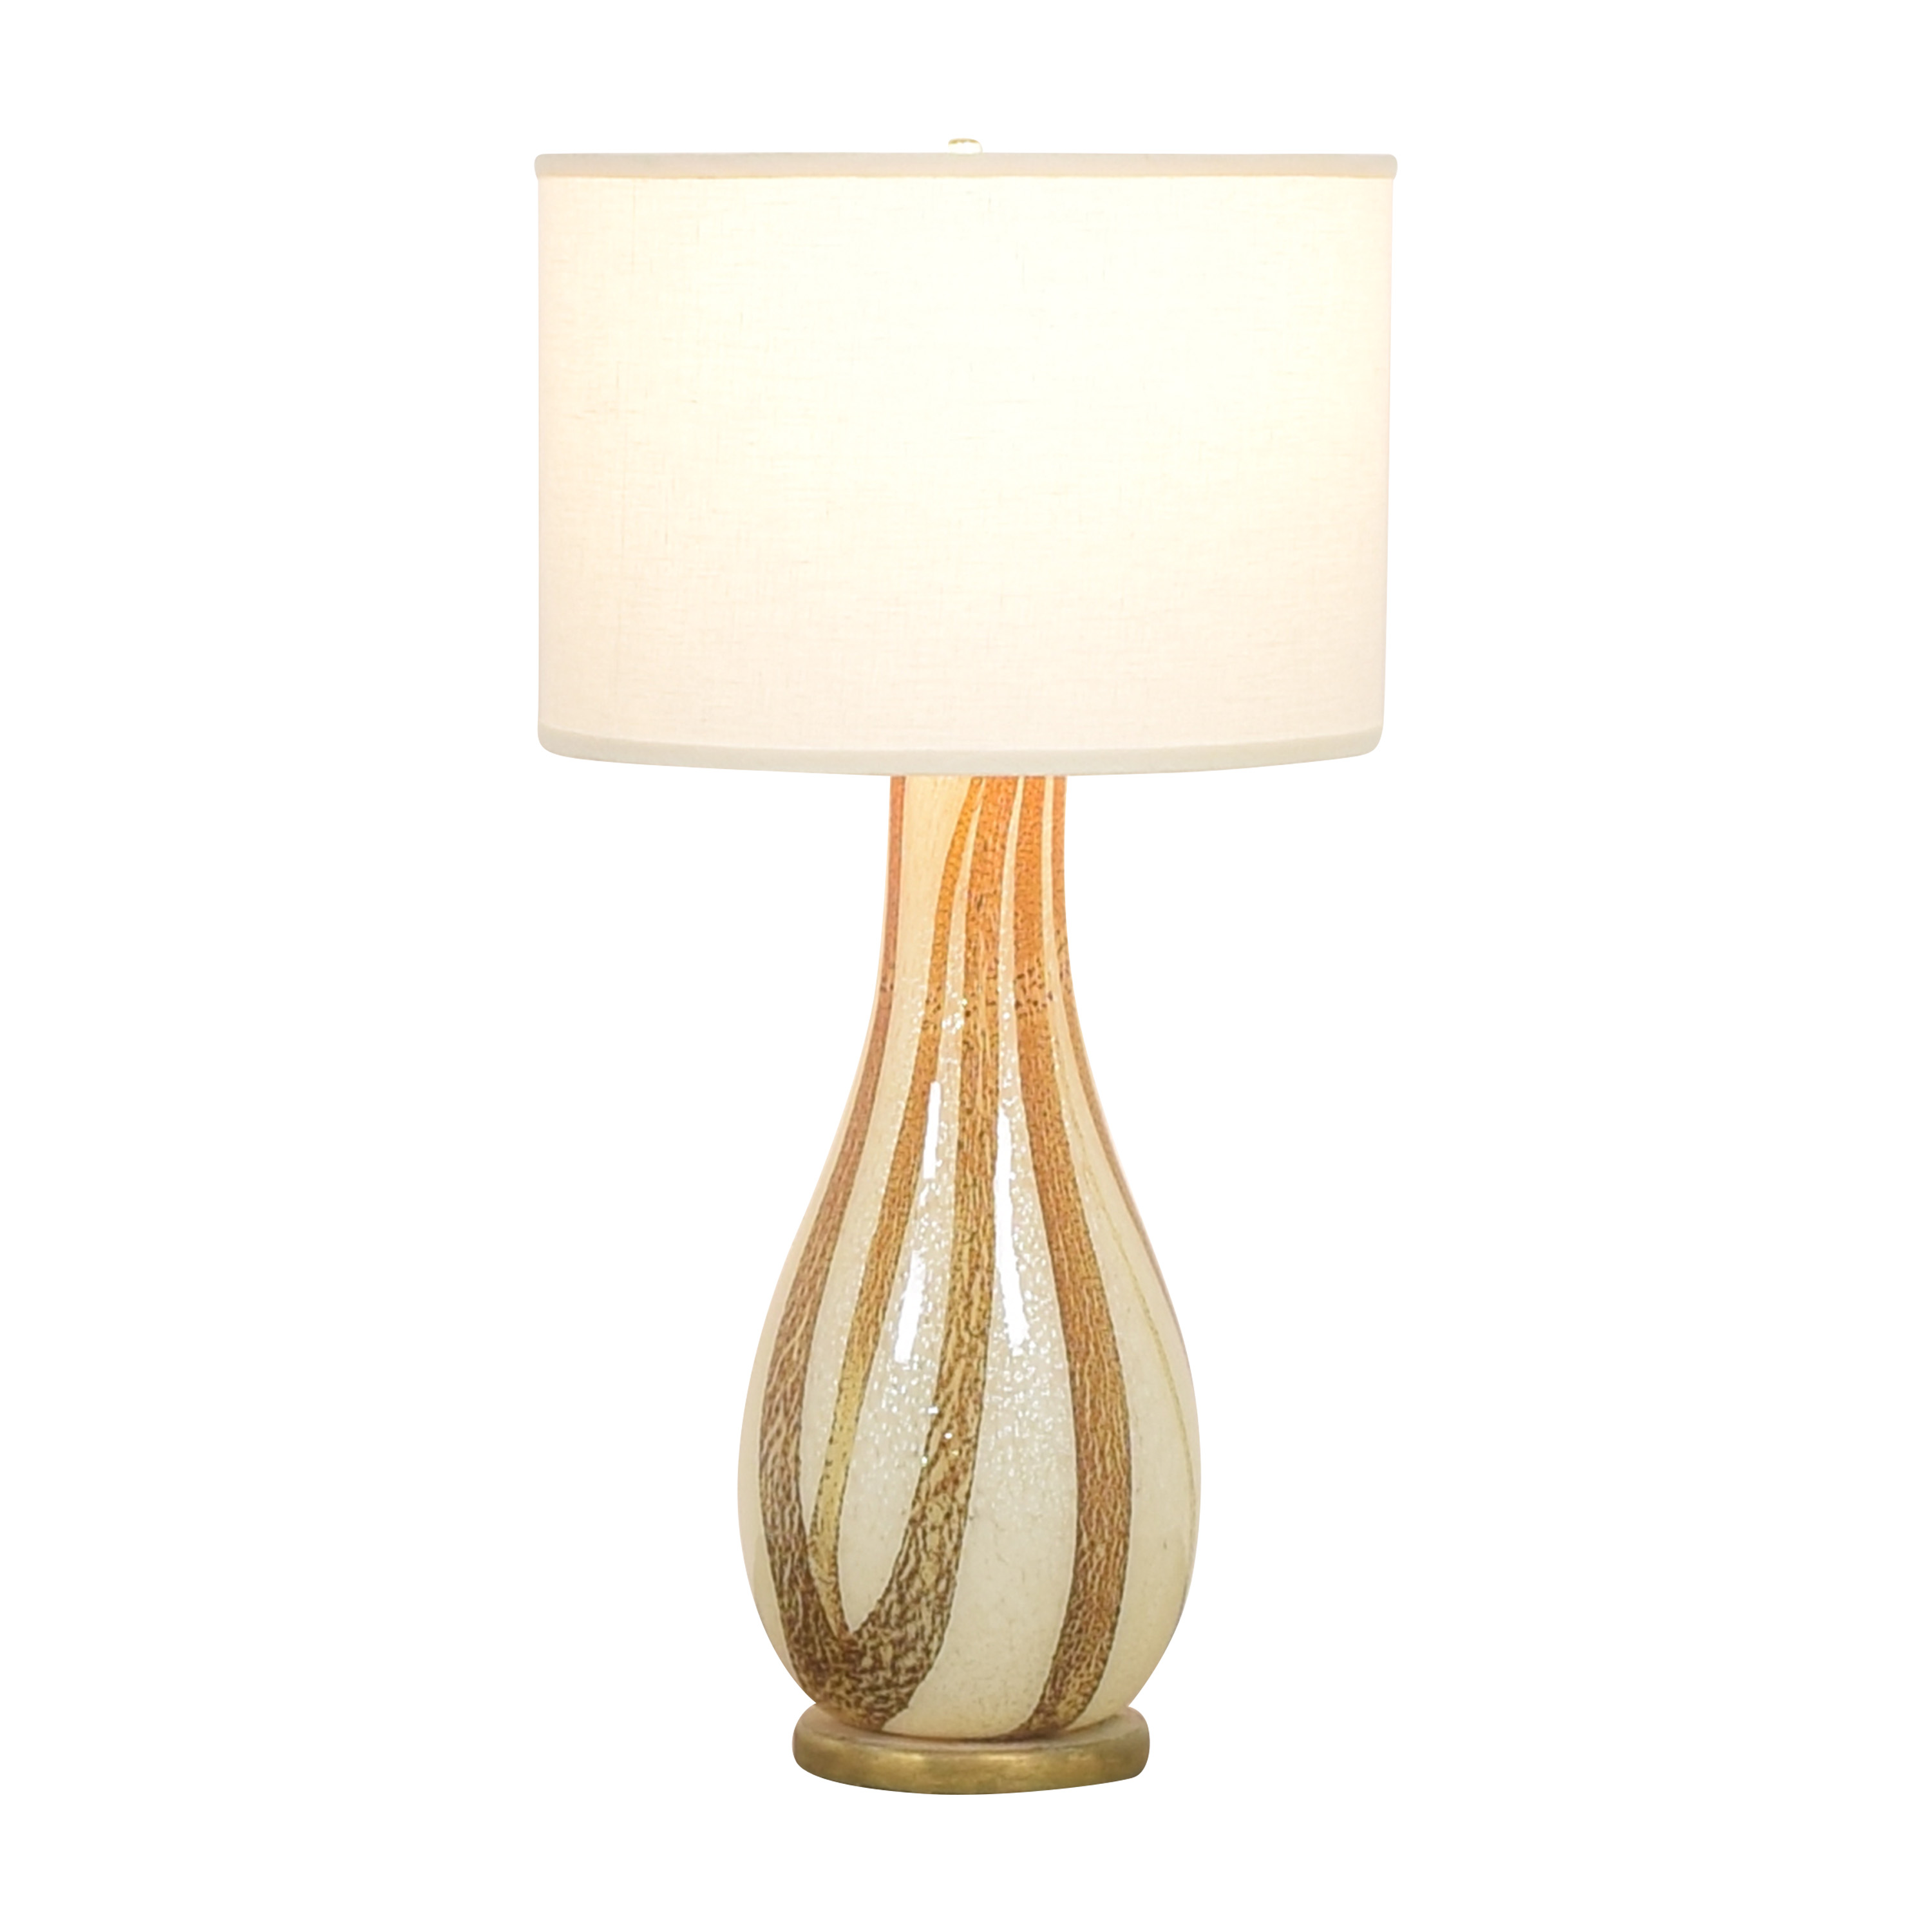 Vase Style Table Lamp off white & gold